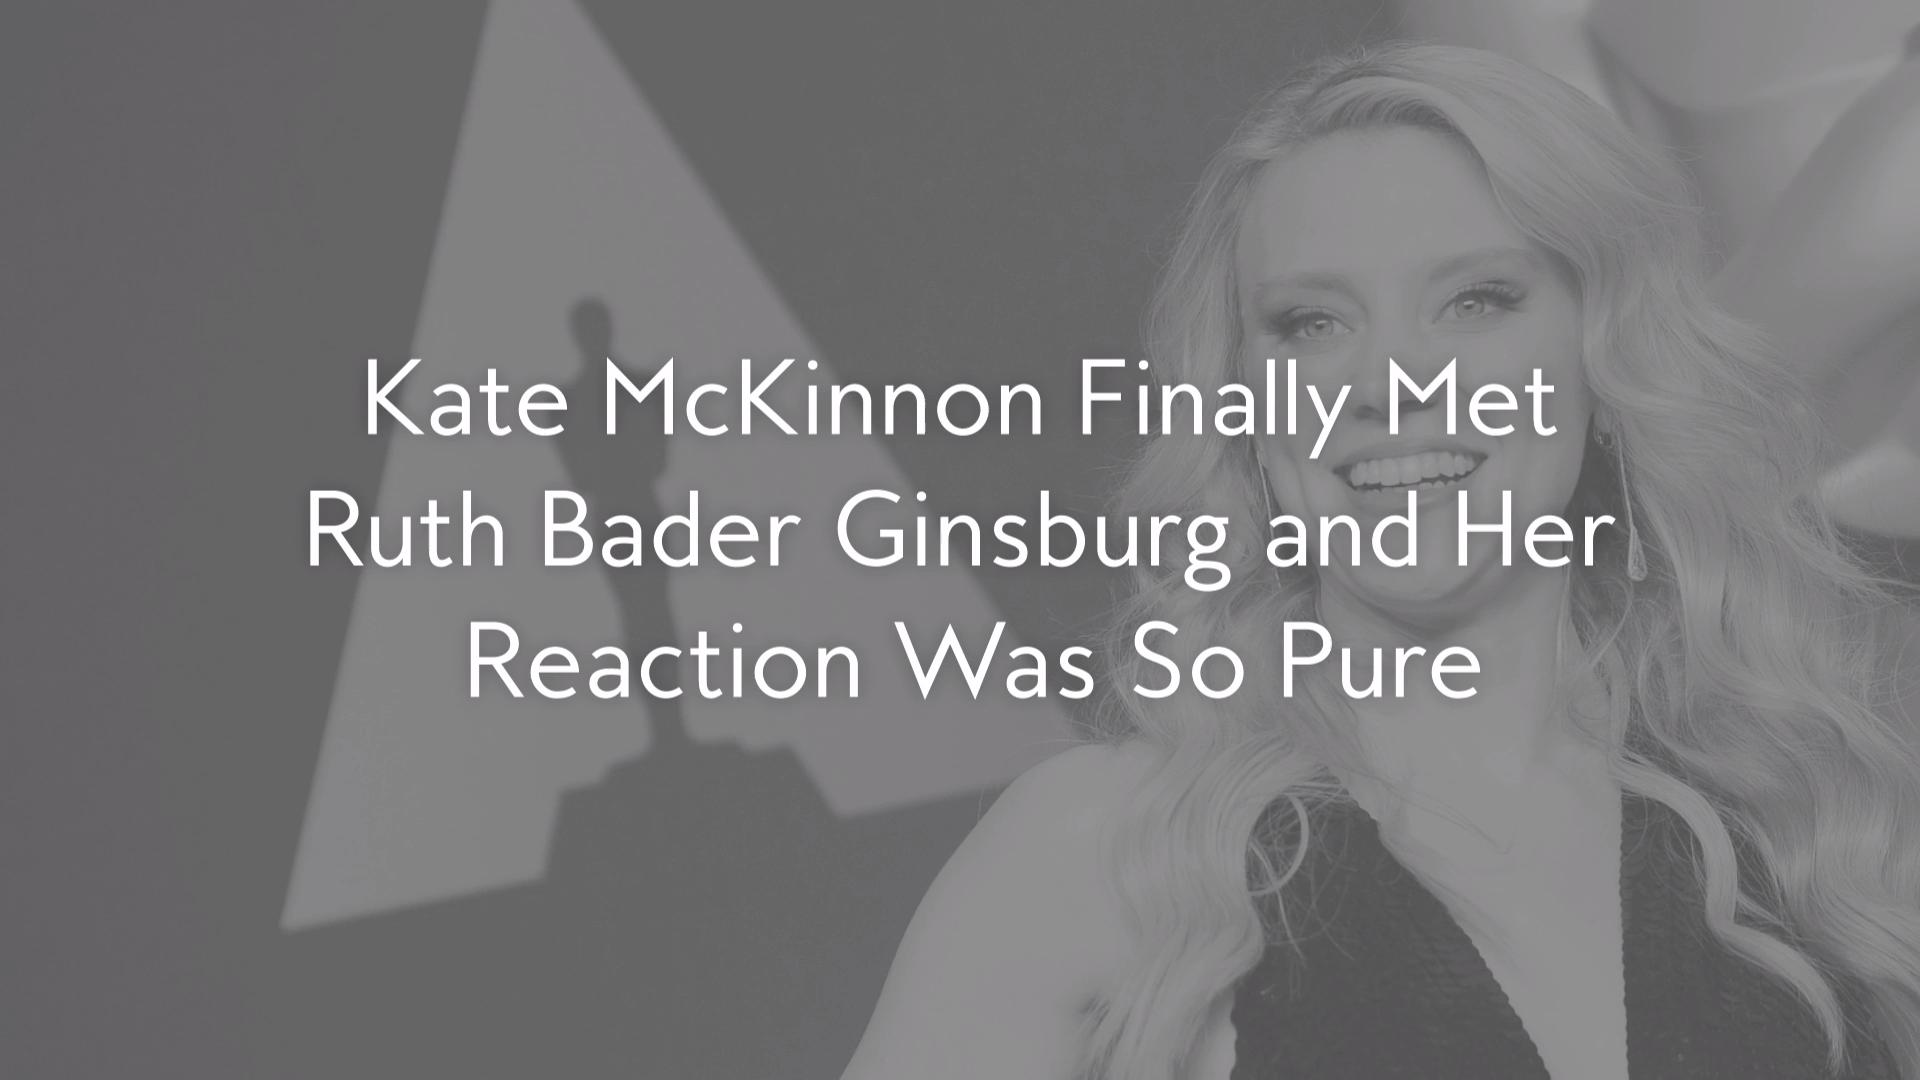 Kate McKinnon Finally Met Ruth Bader Ginsburg and Her Reaction Was So Pure